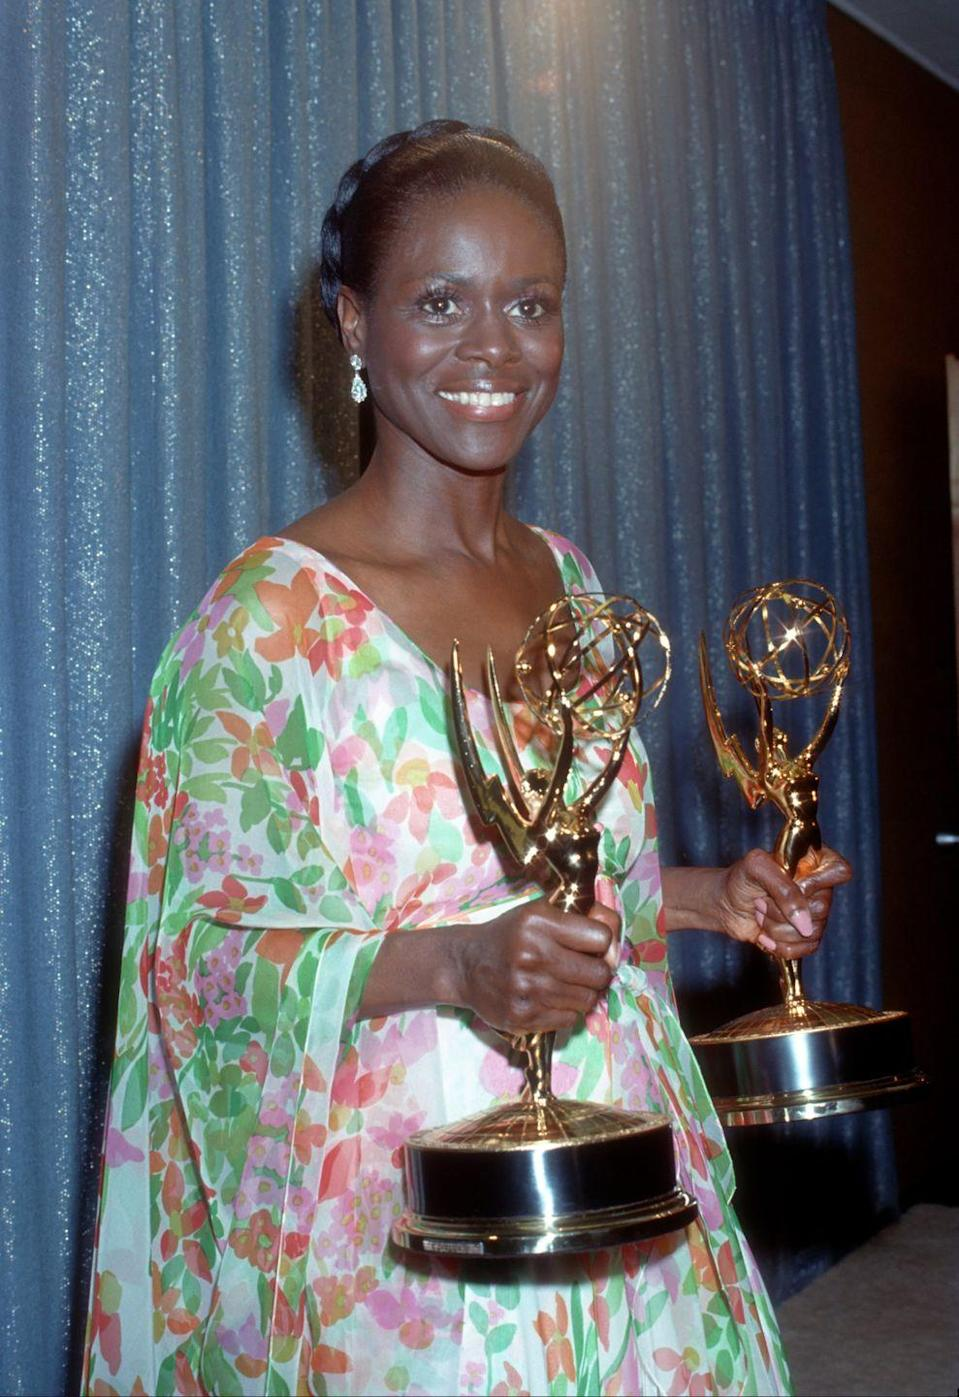 <p>Cicely Tyson holds the two Emmys she won for <em>The Autobiography of Jane Pittman</em> while wearing a beautiful scoop neck, floral printed dress, and braided crown bun.</p>